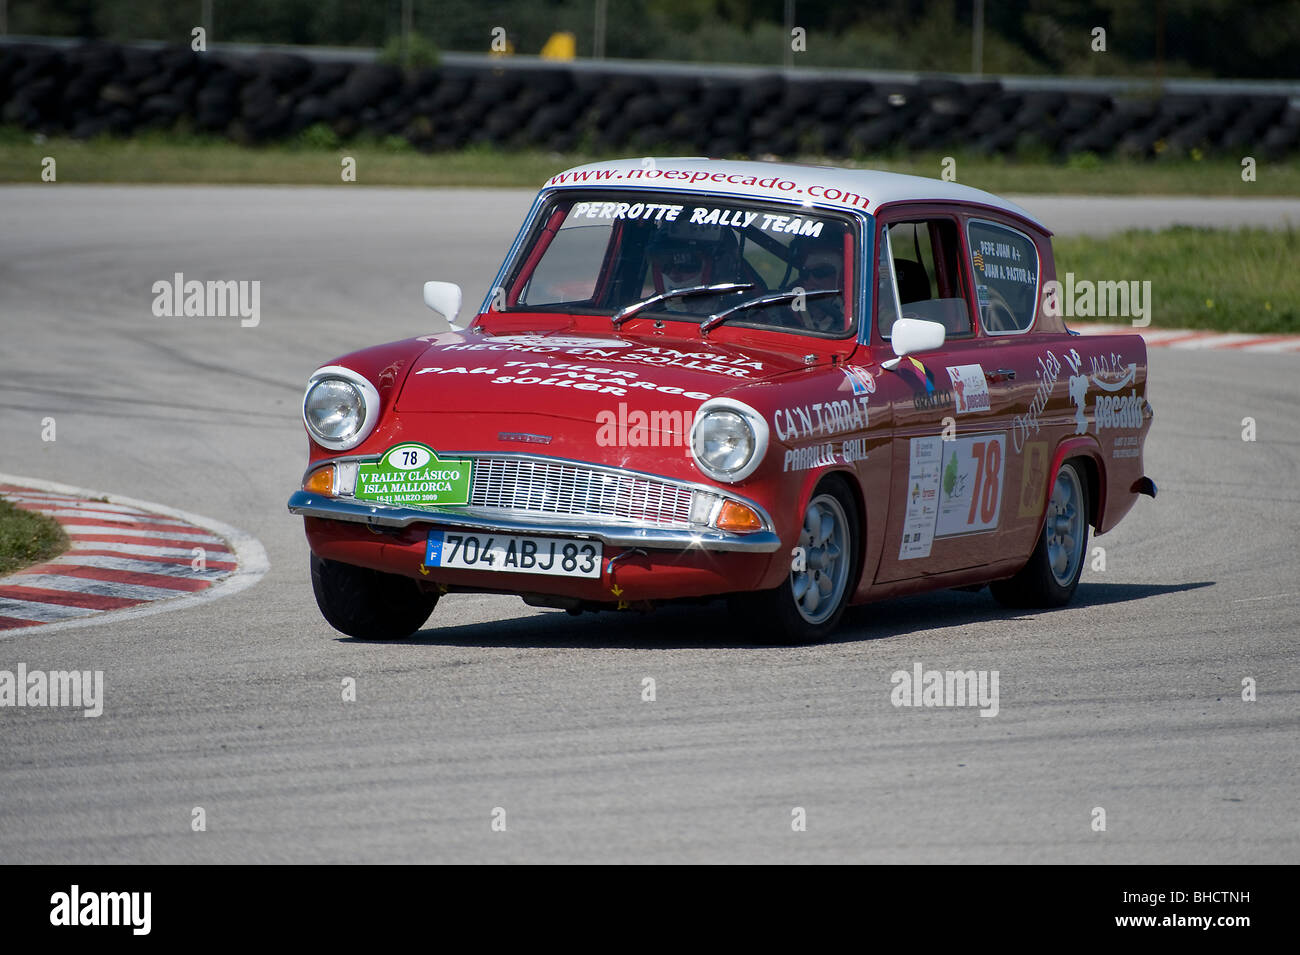 Red Ford Anglia classic car racing in a rally in Spain. & Red Ford Anglia classic car racing in a rally in Spain Stock Photo ... markmcfarlin.com